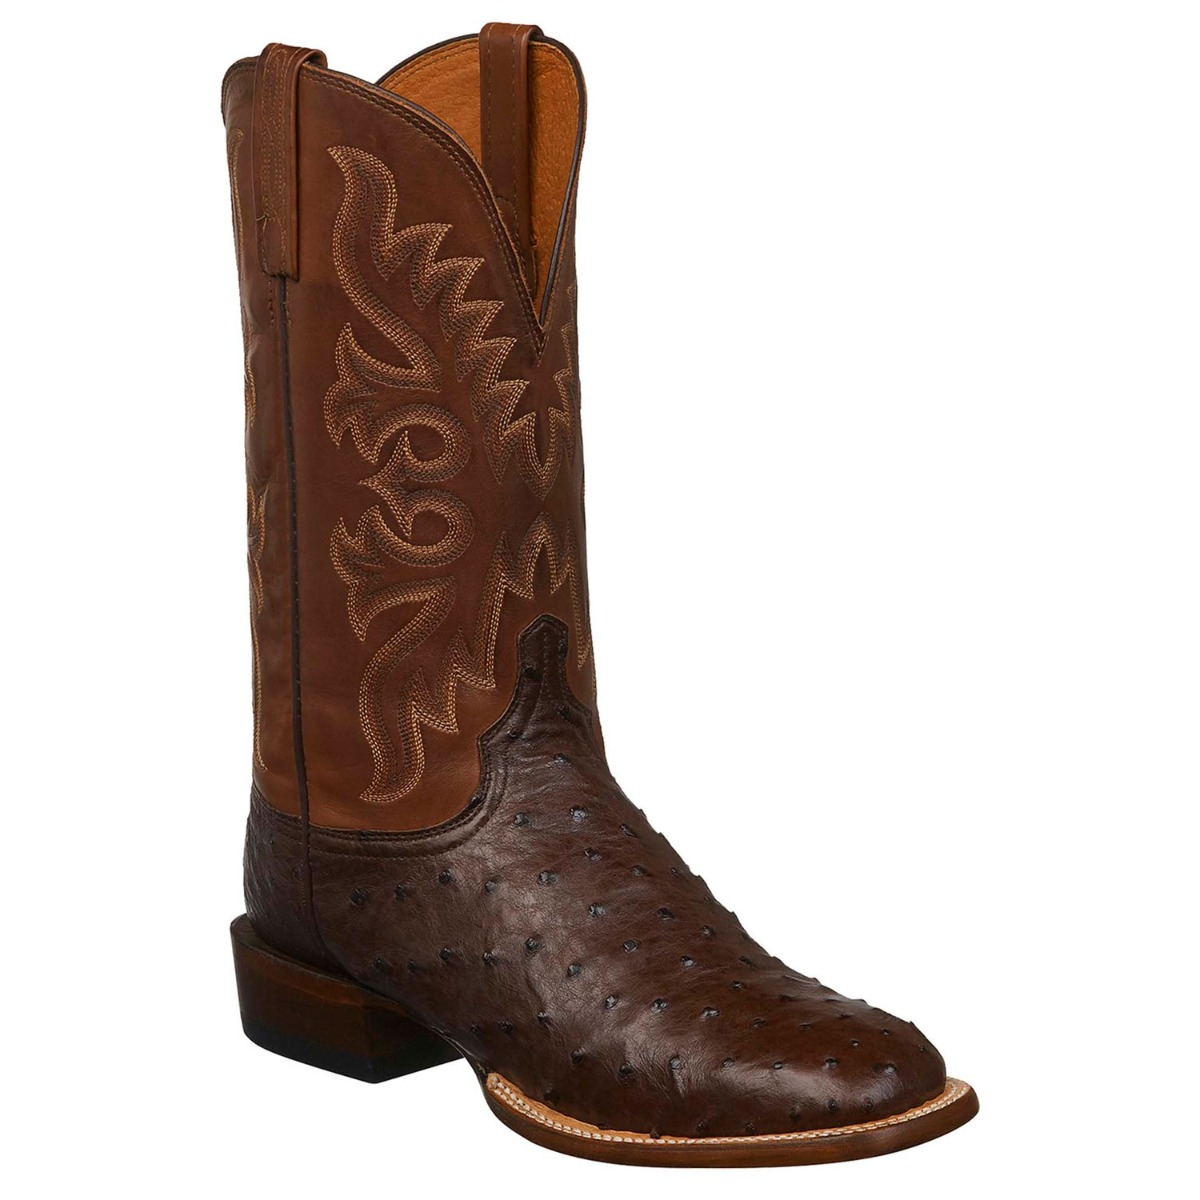 Lucchese Men's Sienna Ostrich Square Toe Cowboy Boots